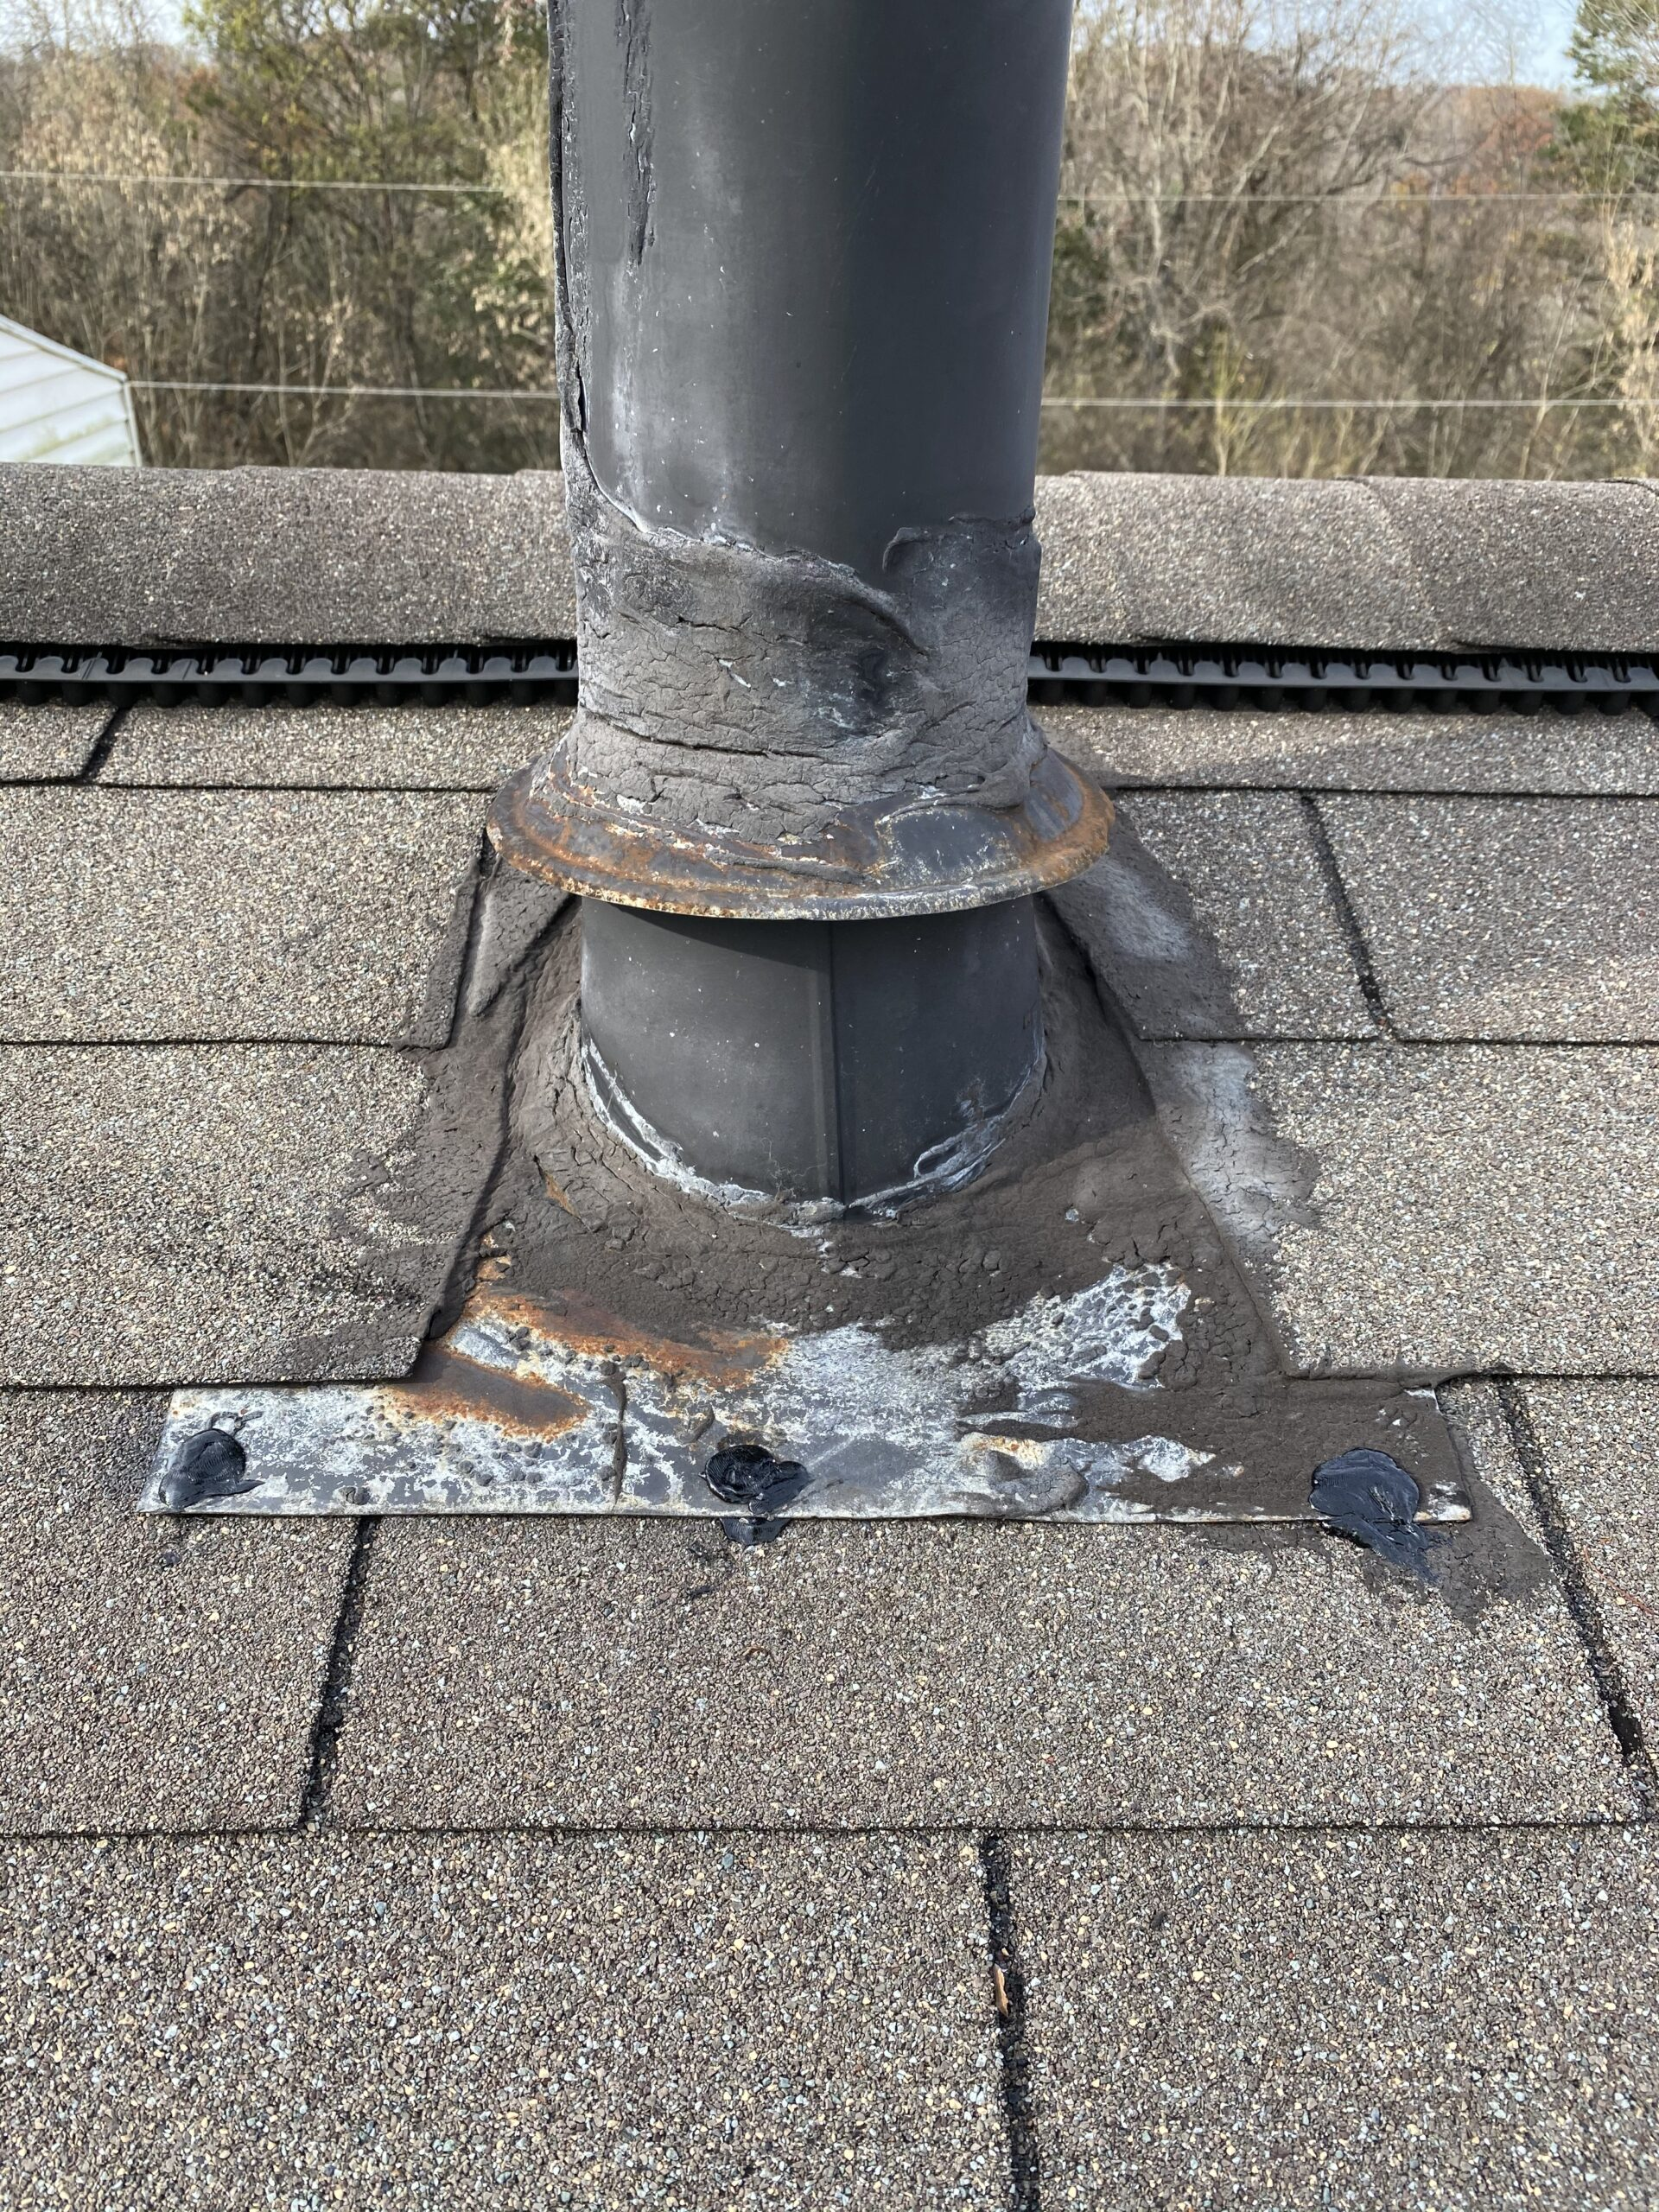 This is a picture of a stove pipe that was completely sealed.